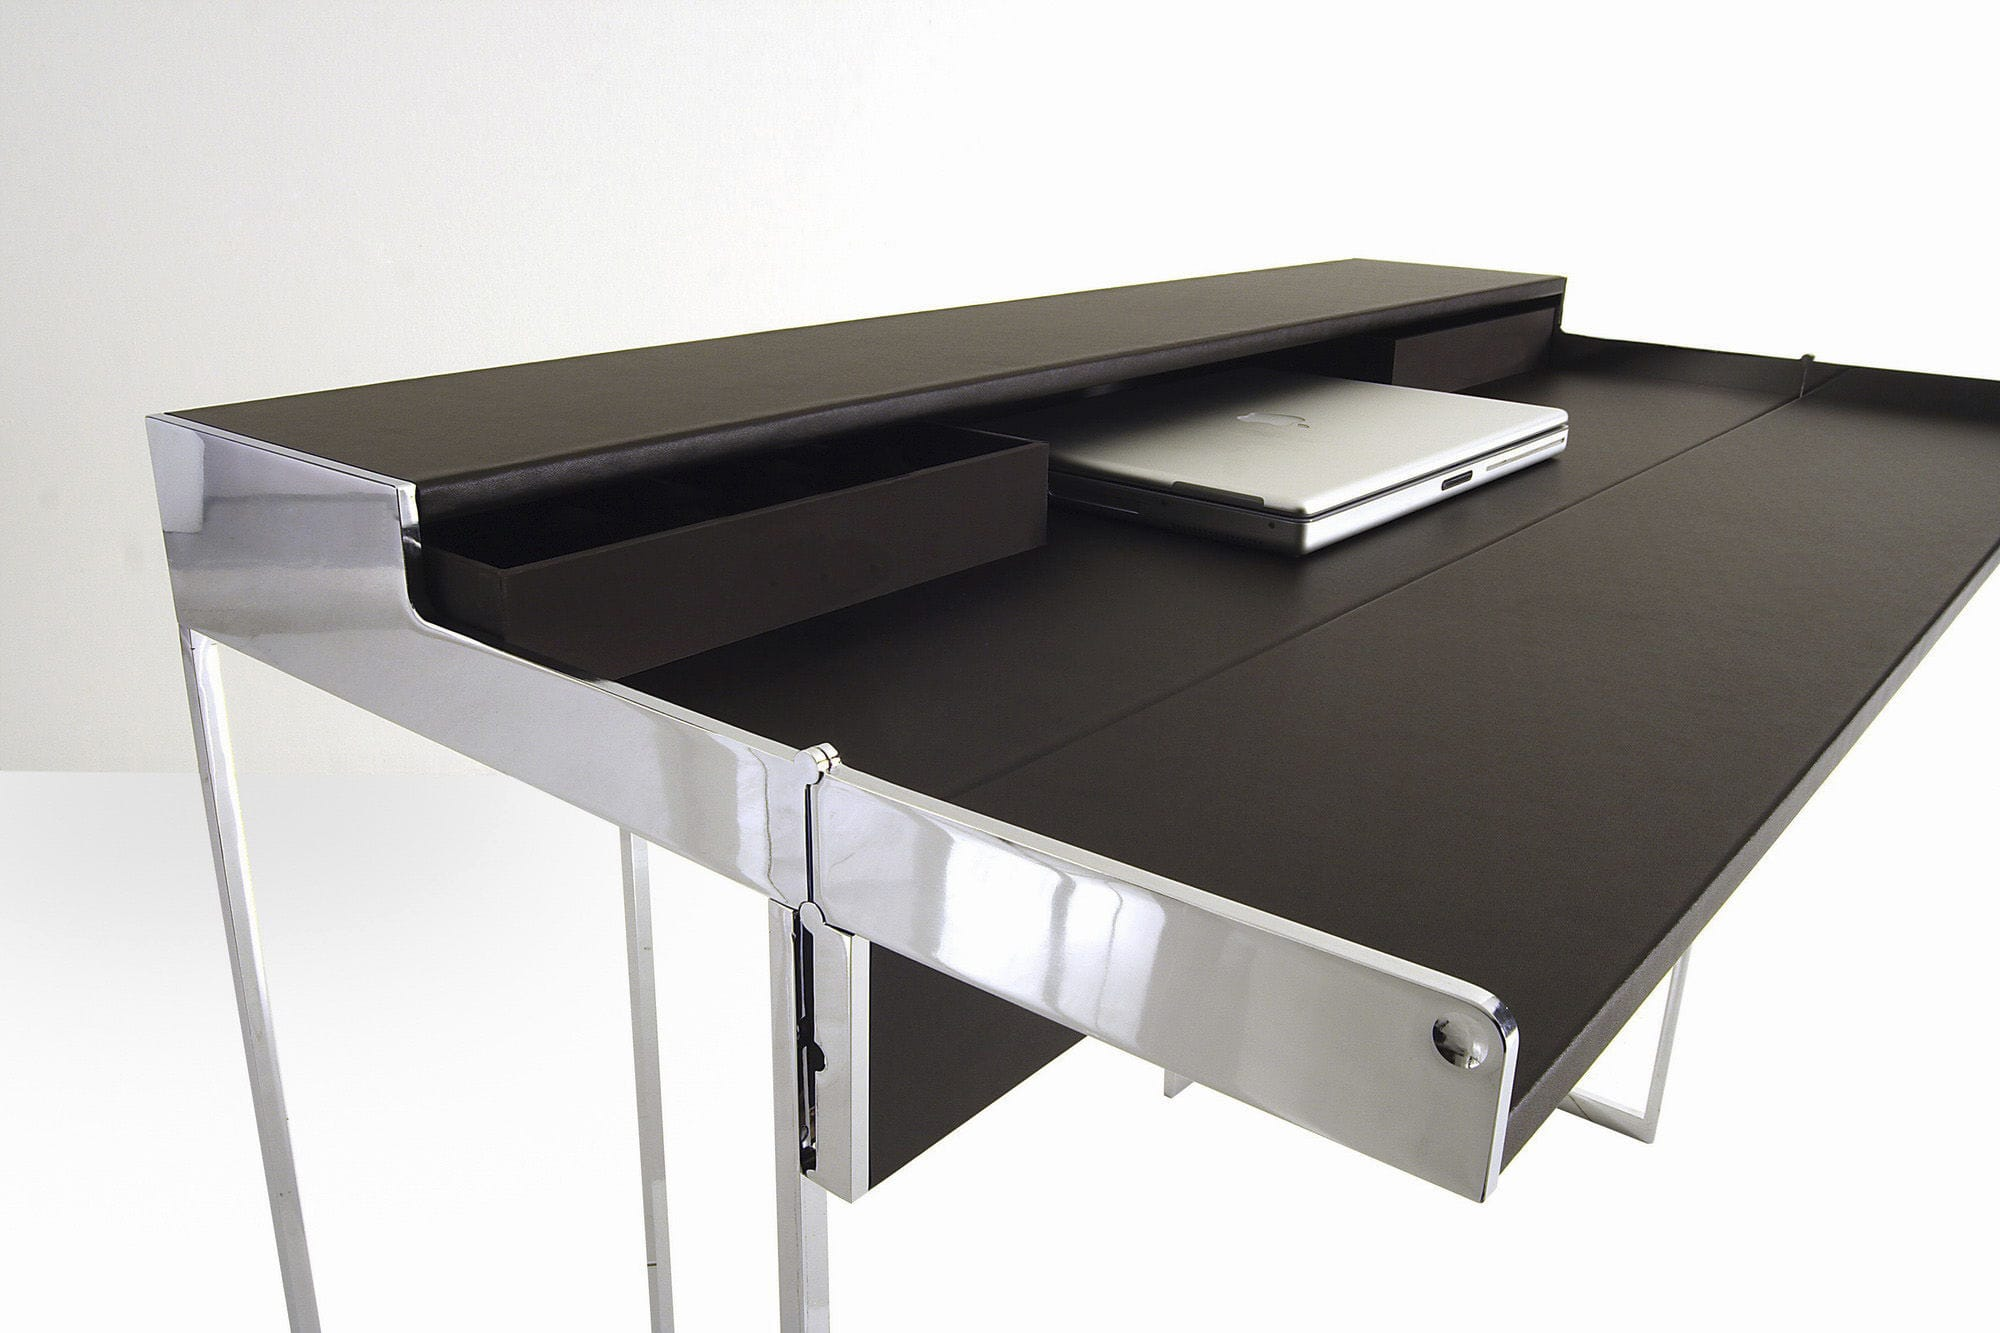 stainless steel desk  leather  contemporary magic by andré schelbachyomei . stainless steel desk  leather  contemporary  magic by andré